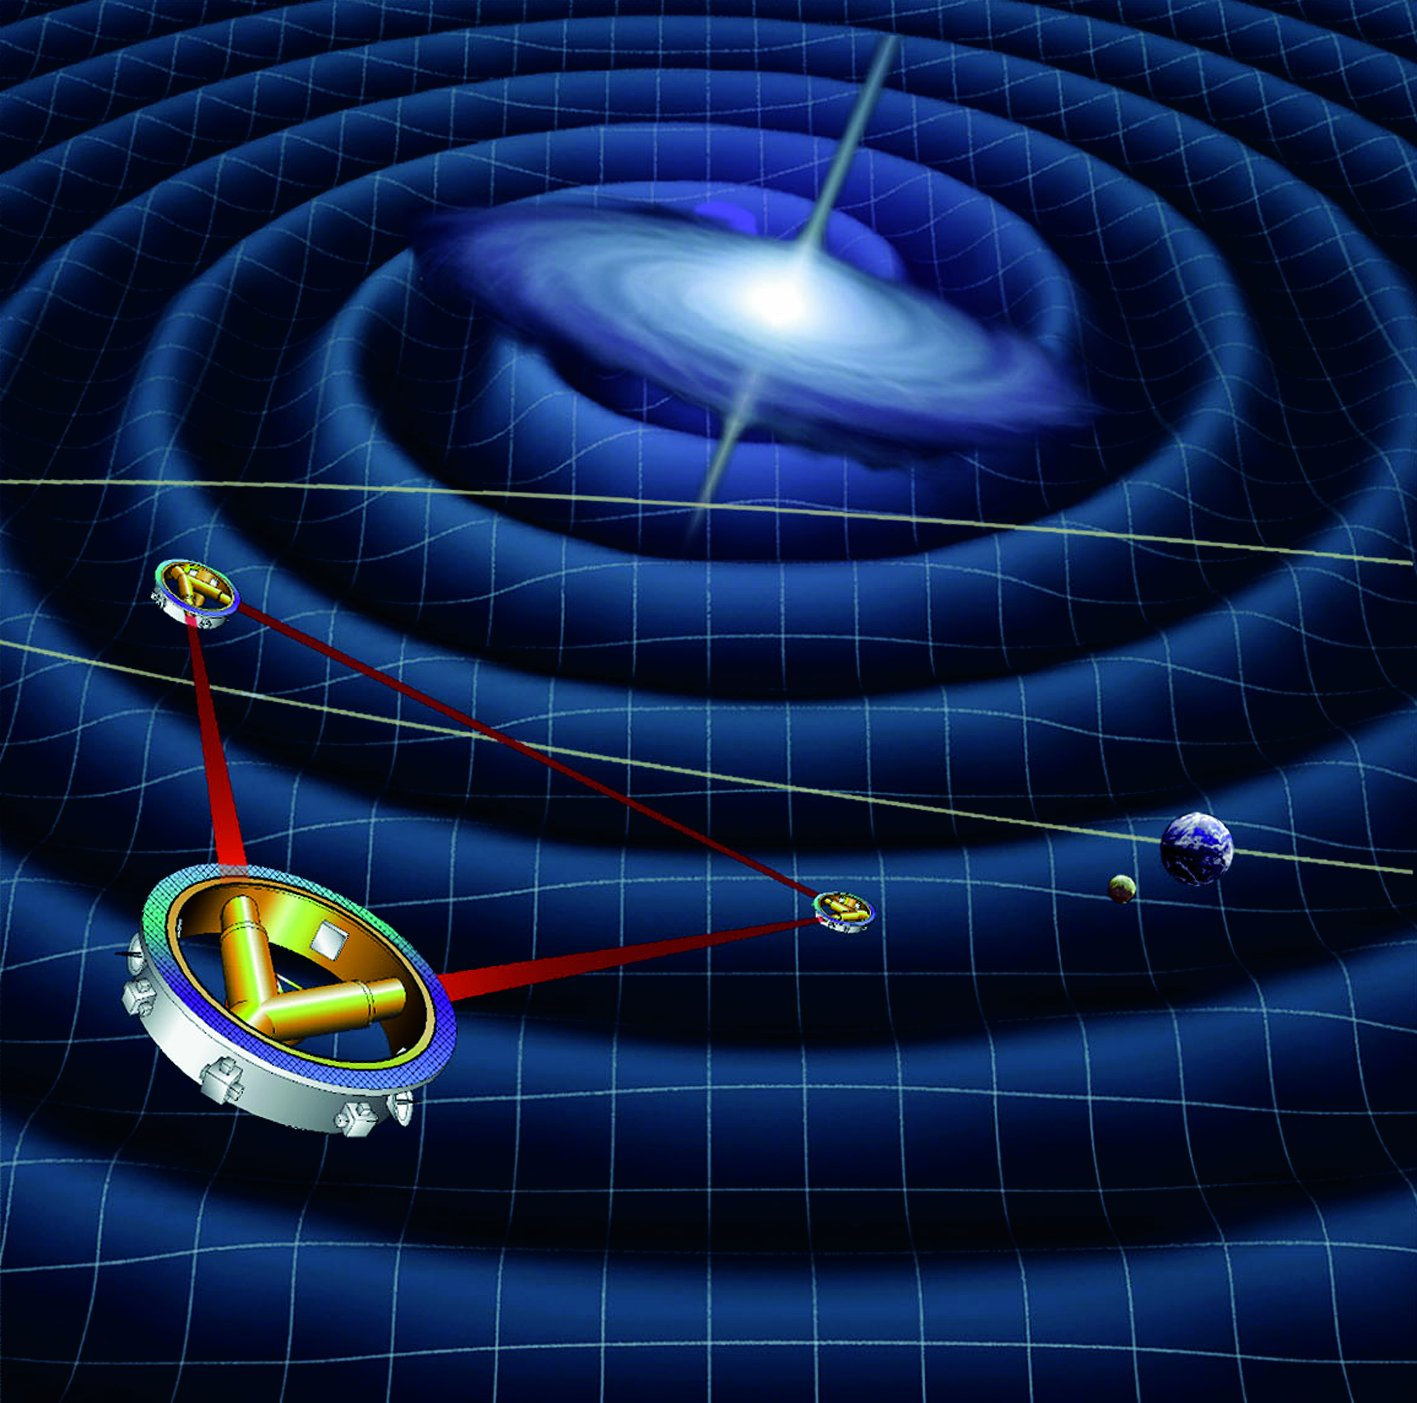 Space Mission to Hunt Gravity Waves Shuts Down Over NASA Funding Shortage